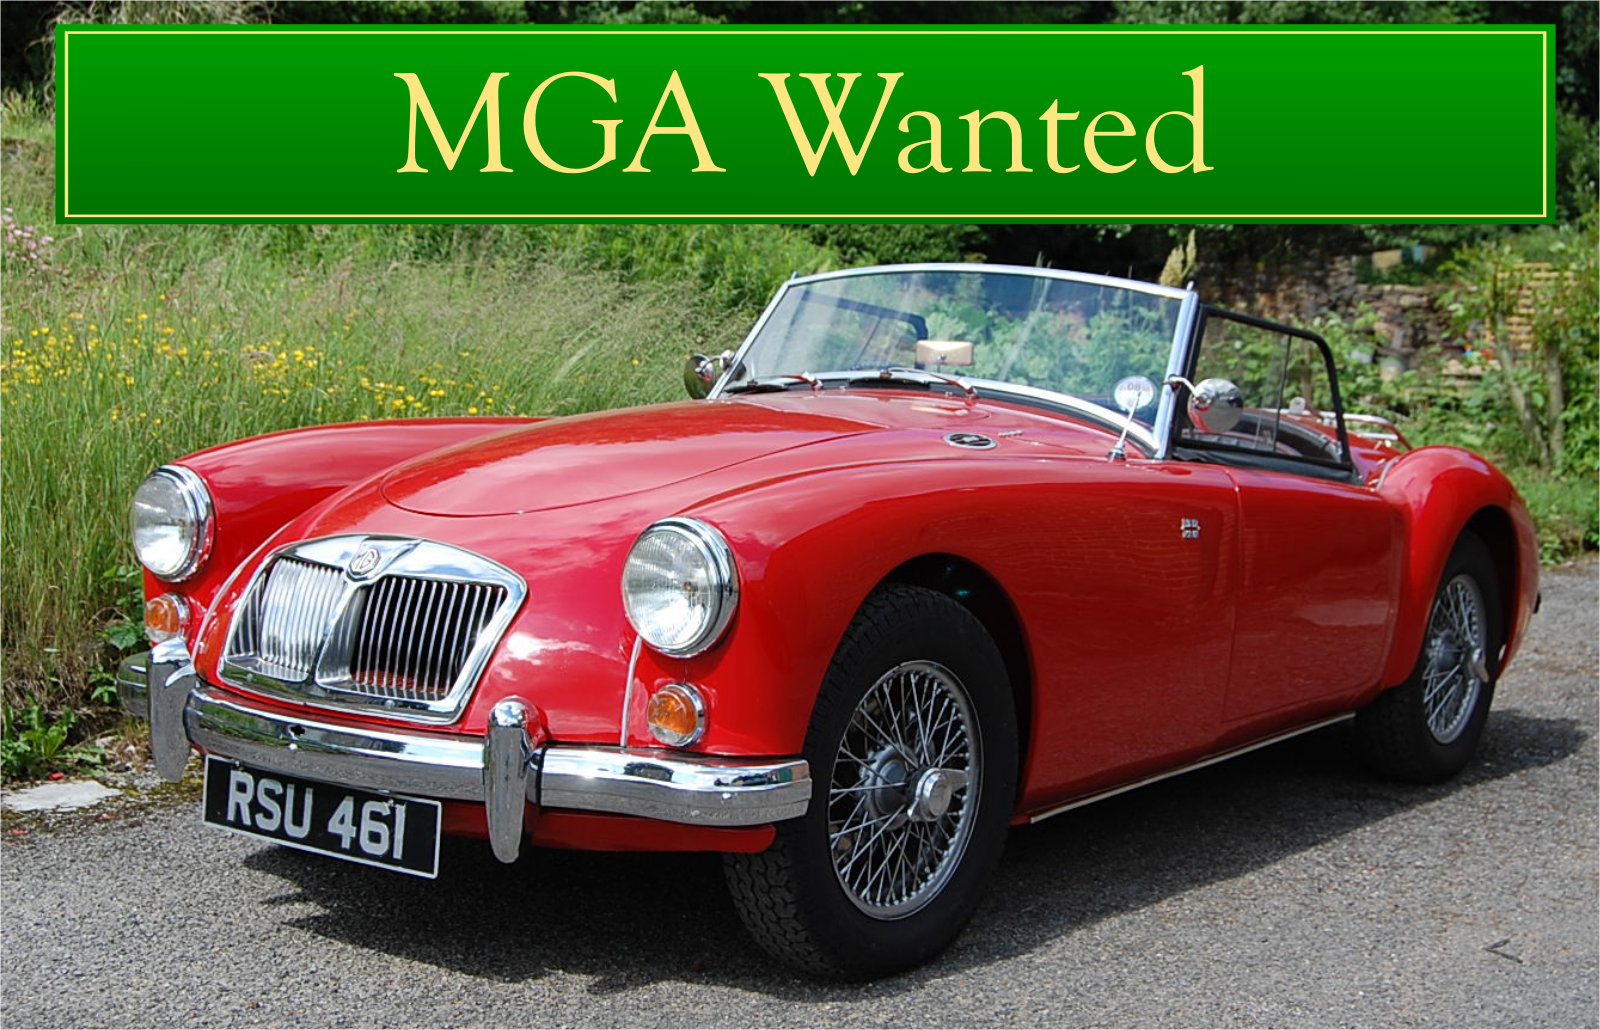 VAUXHALL CRESTA WANTED, CLASSIC CARS WANTED INSTANT PAYMENT Wanted (picture 6 of 6)